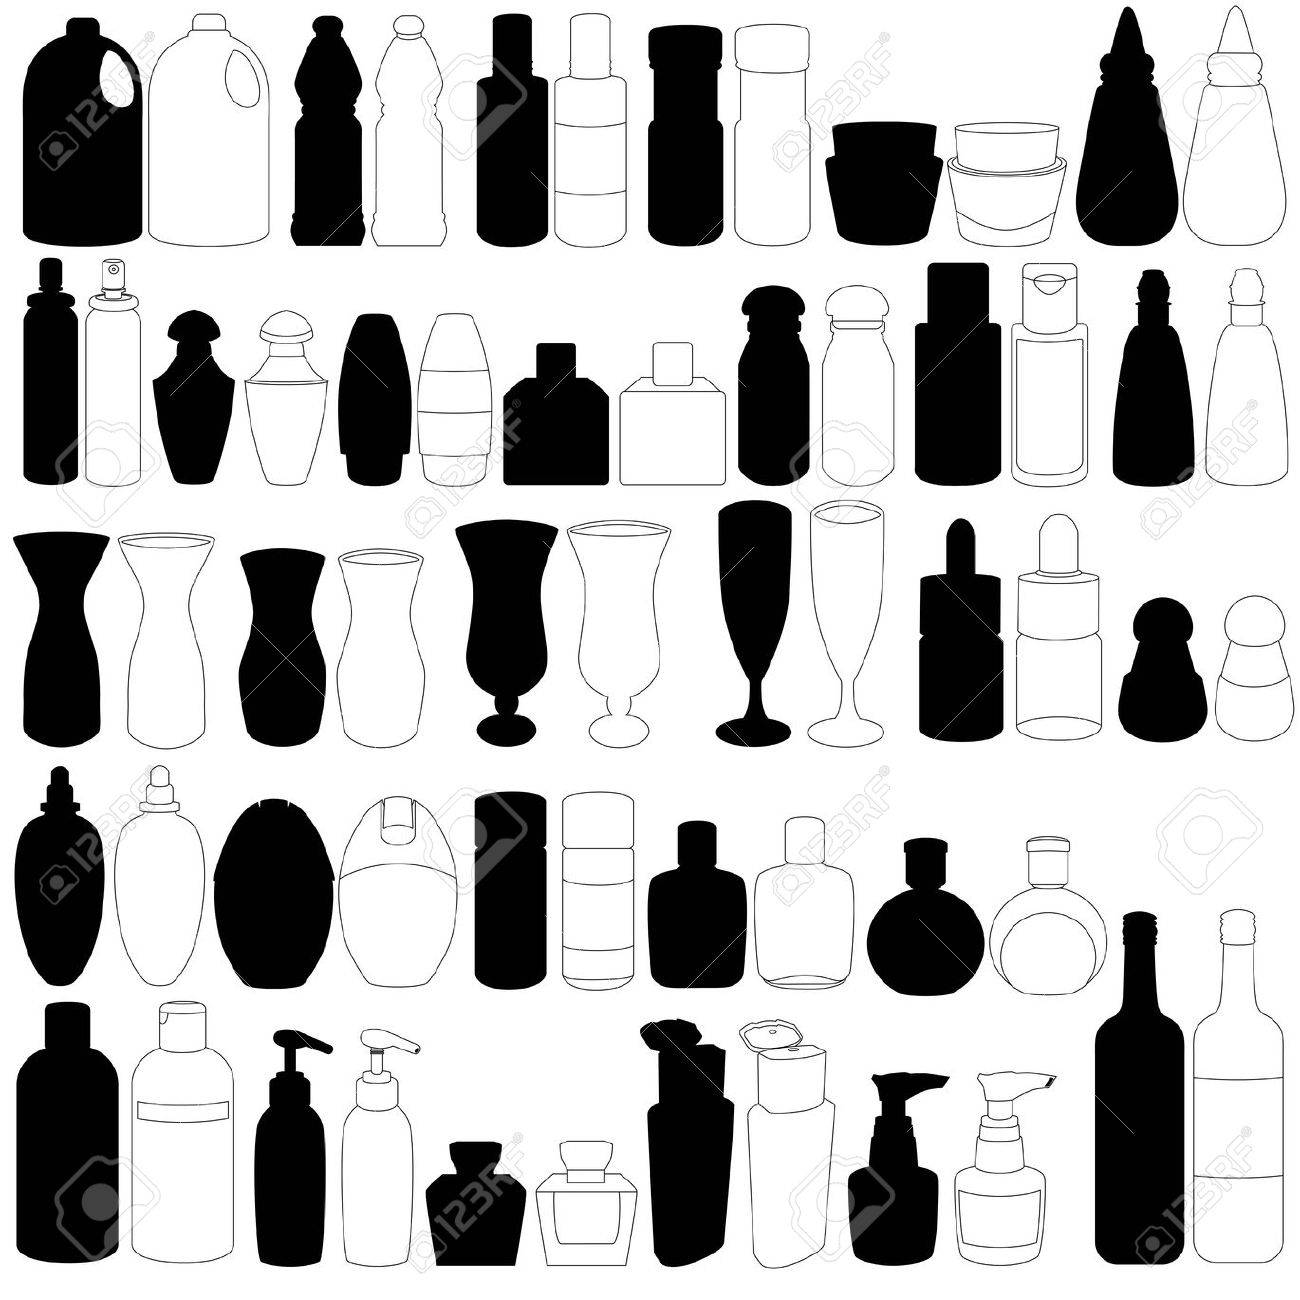 A Silhouette set of bottle, perfume, glass, containers Stock Vector - 12119571